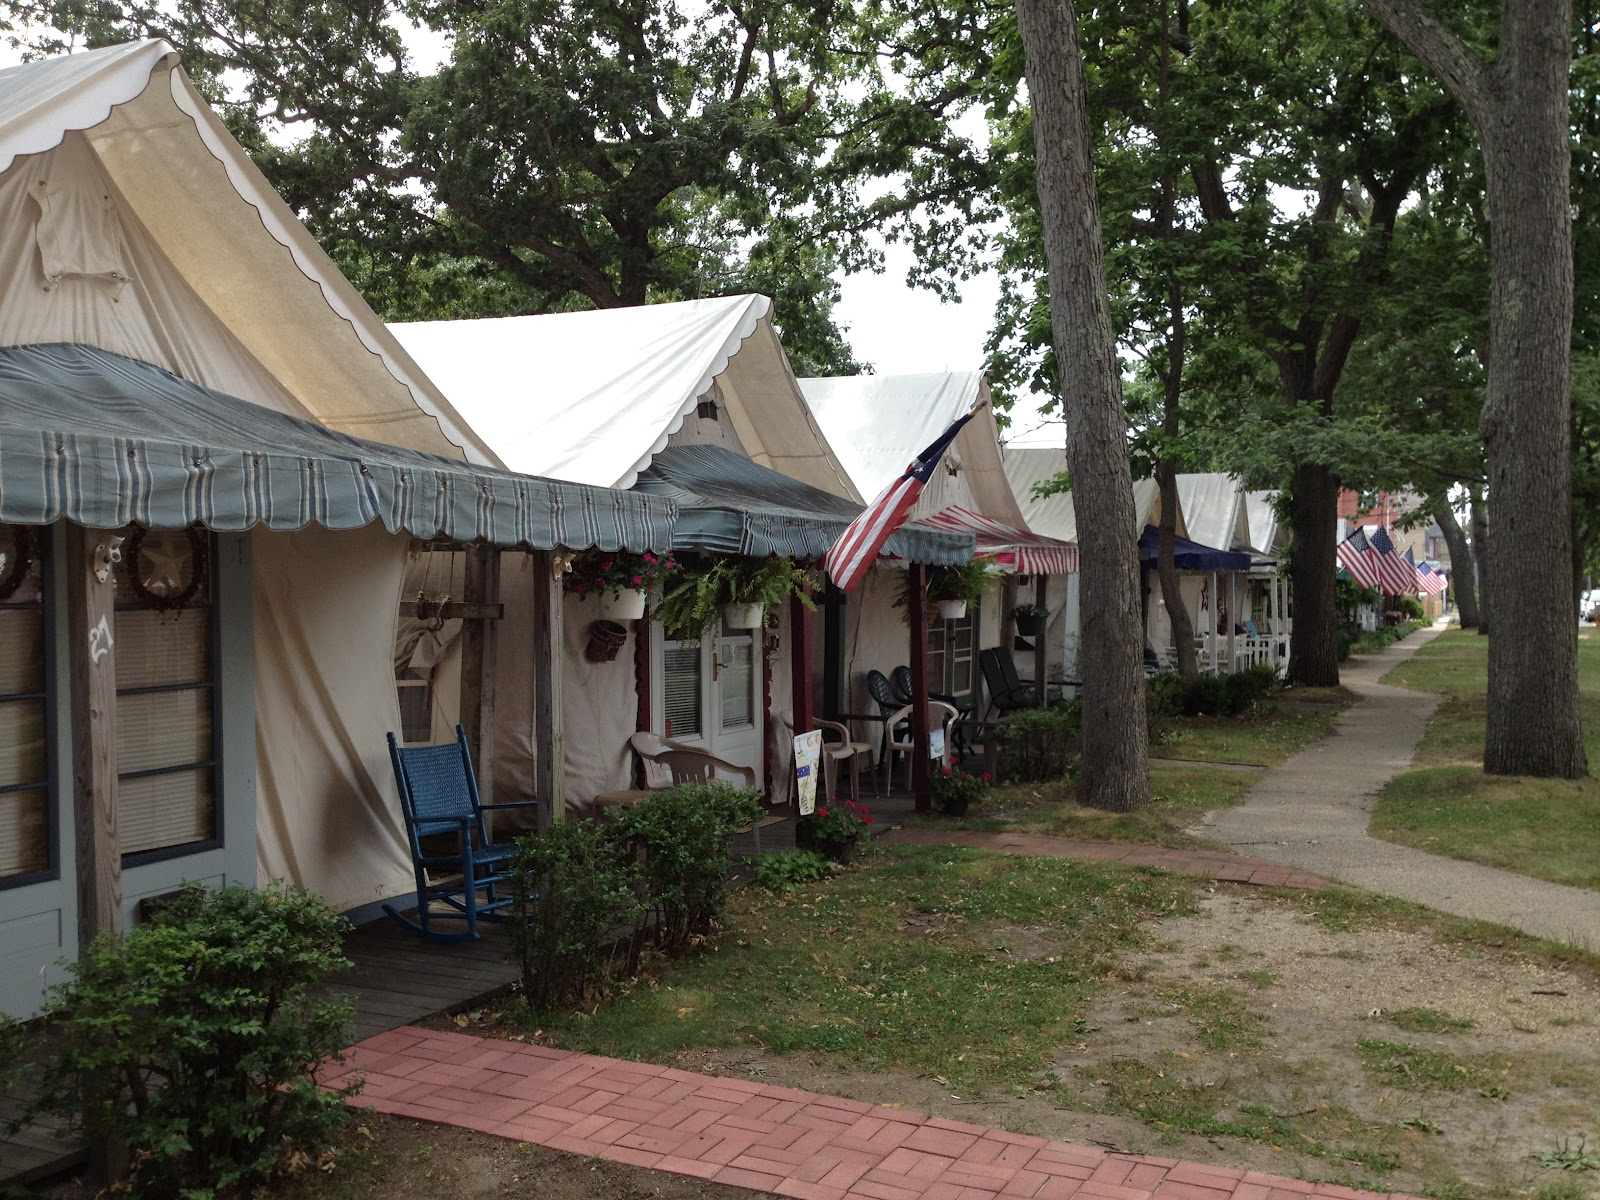 The tents of Ocean Grove & Instant House: Ocean Grove Camp Meeting